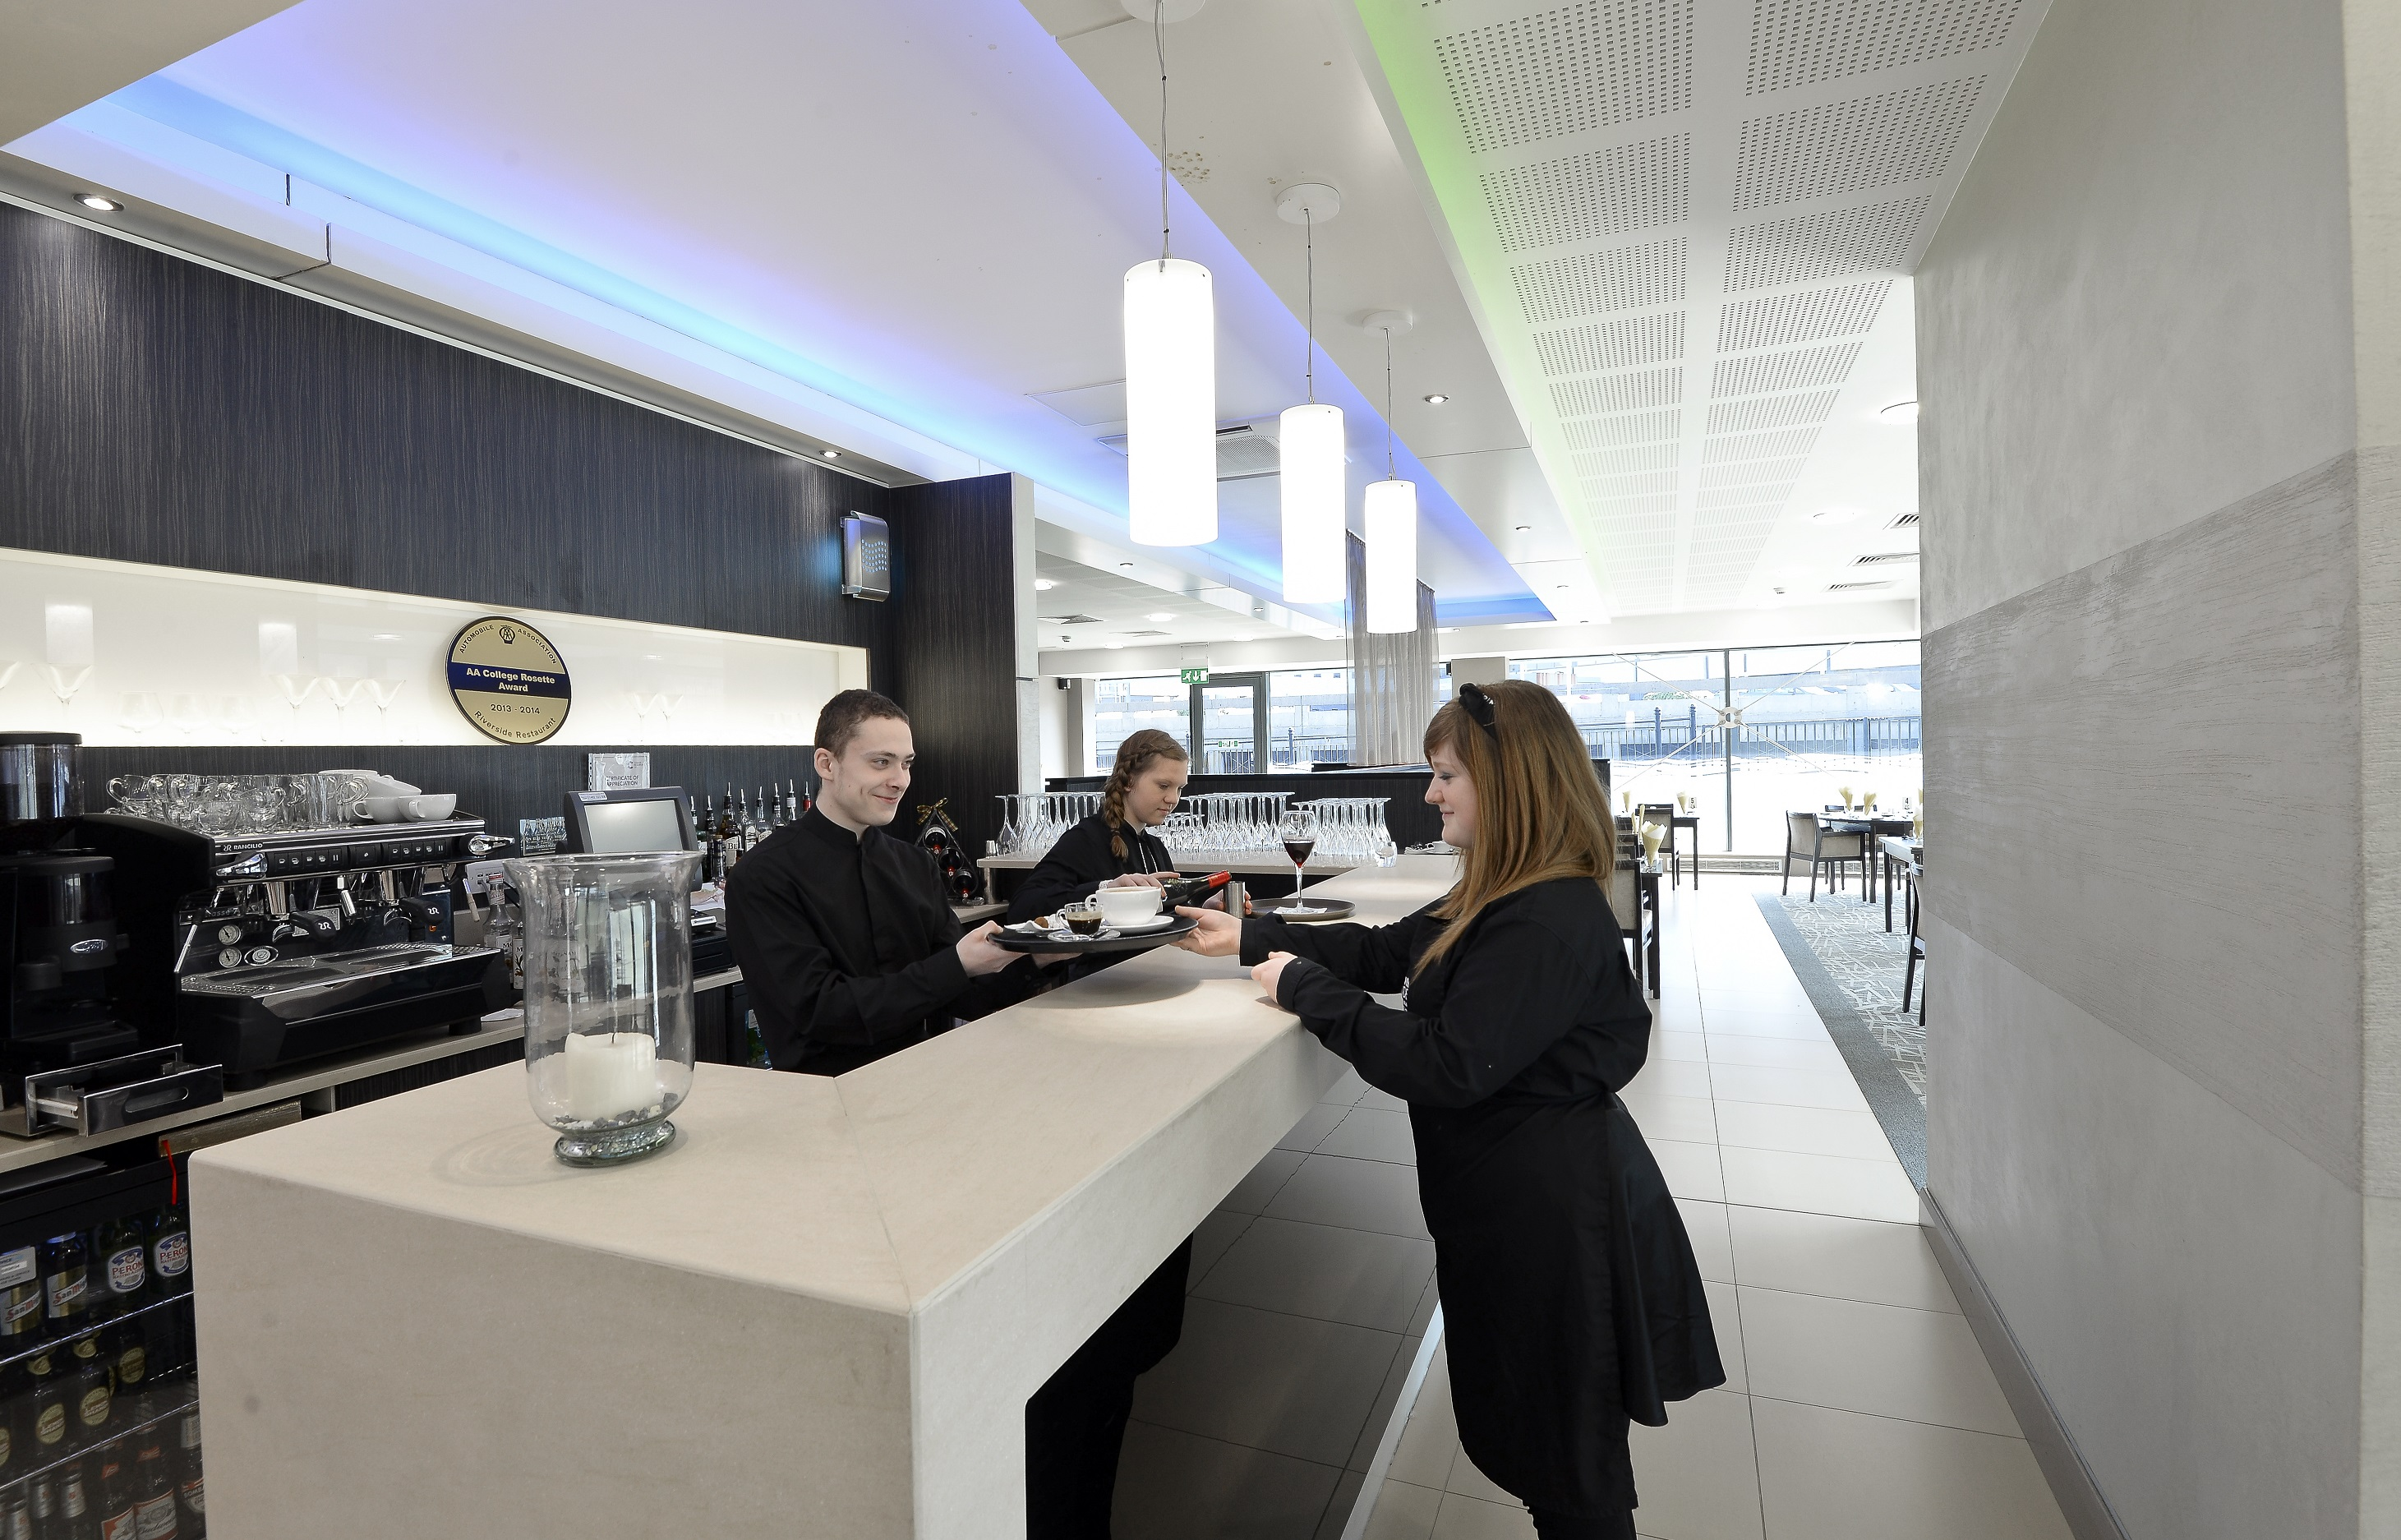 The Riverside Restaurant is open at Hopwood Hall College